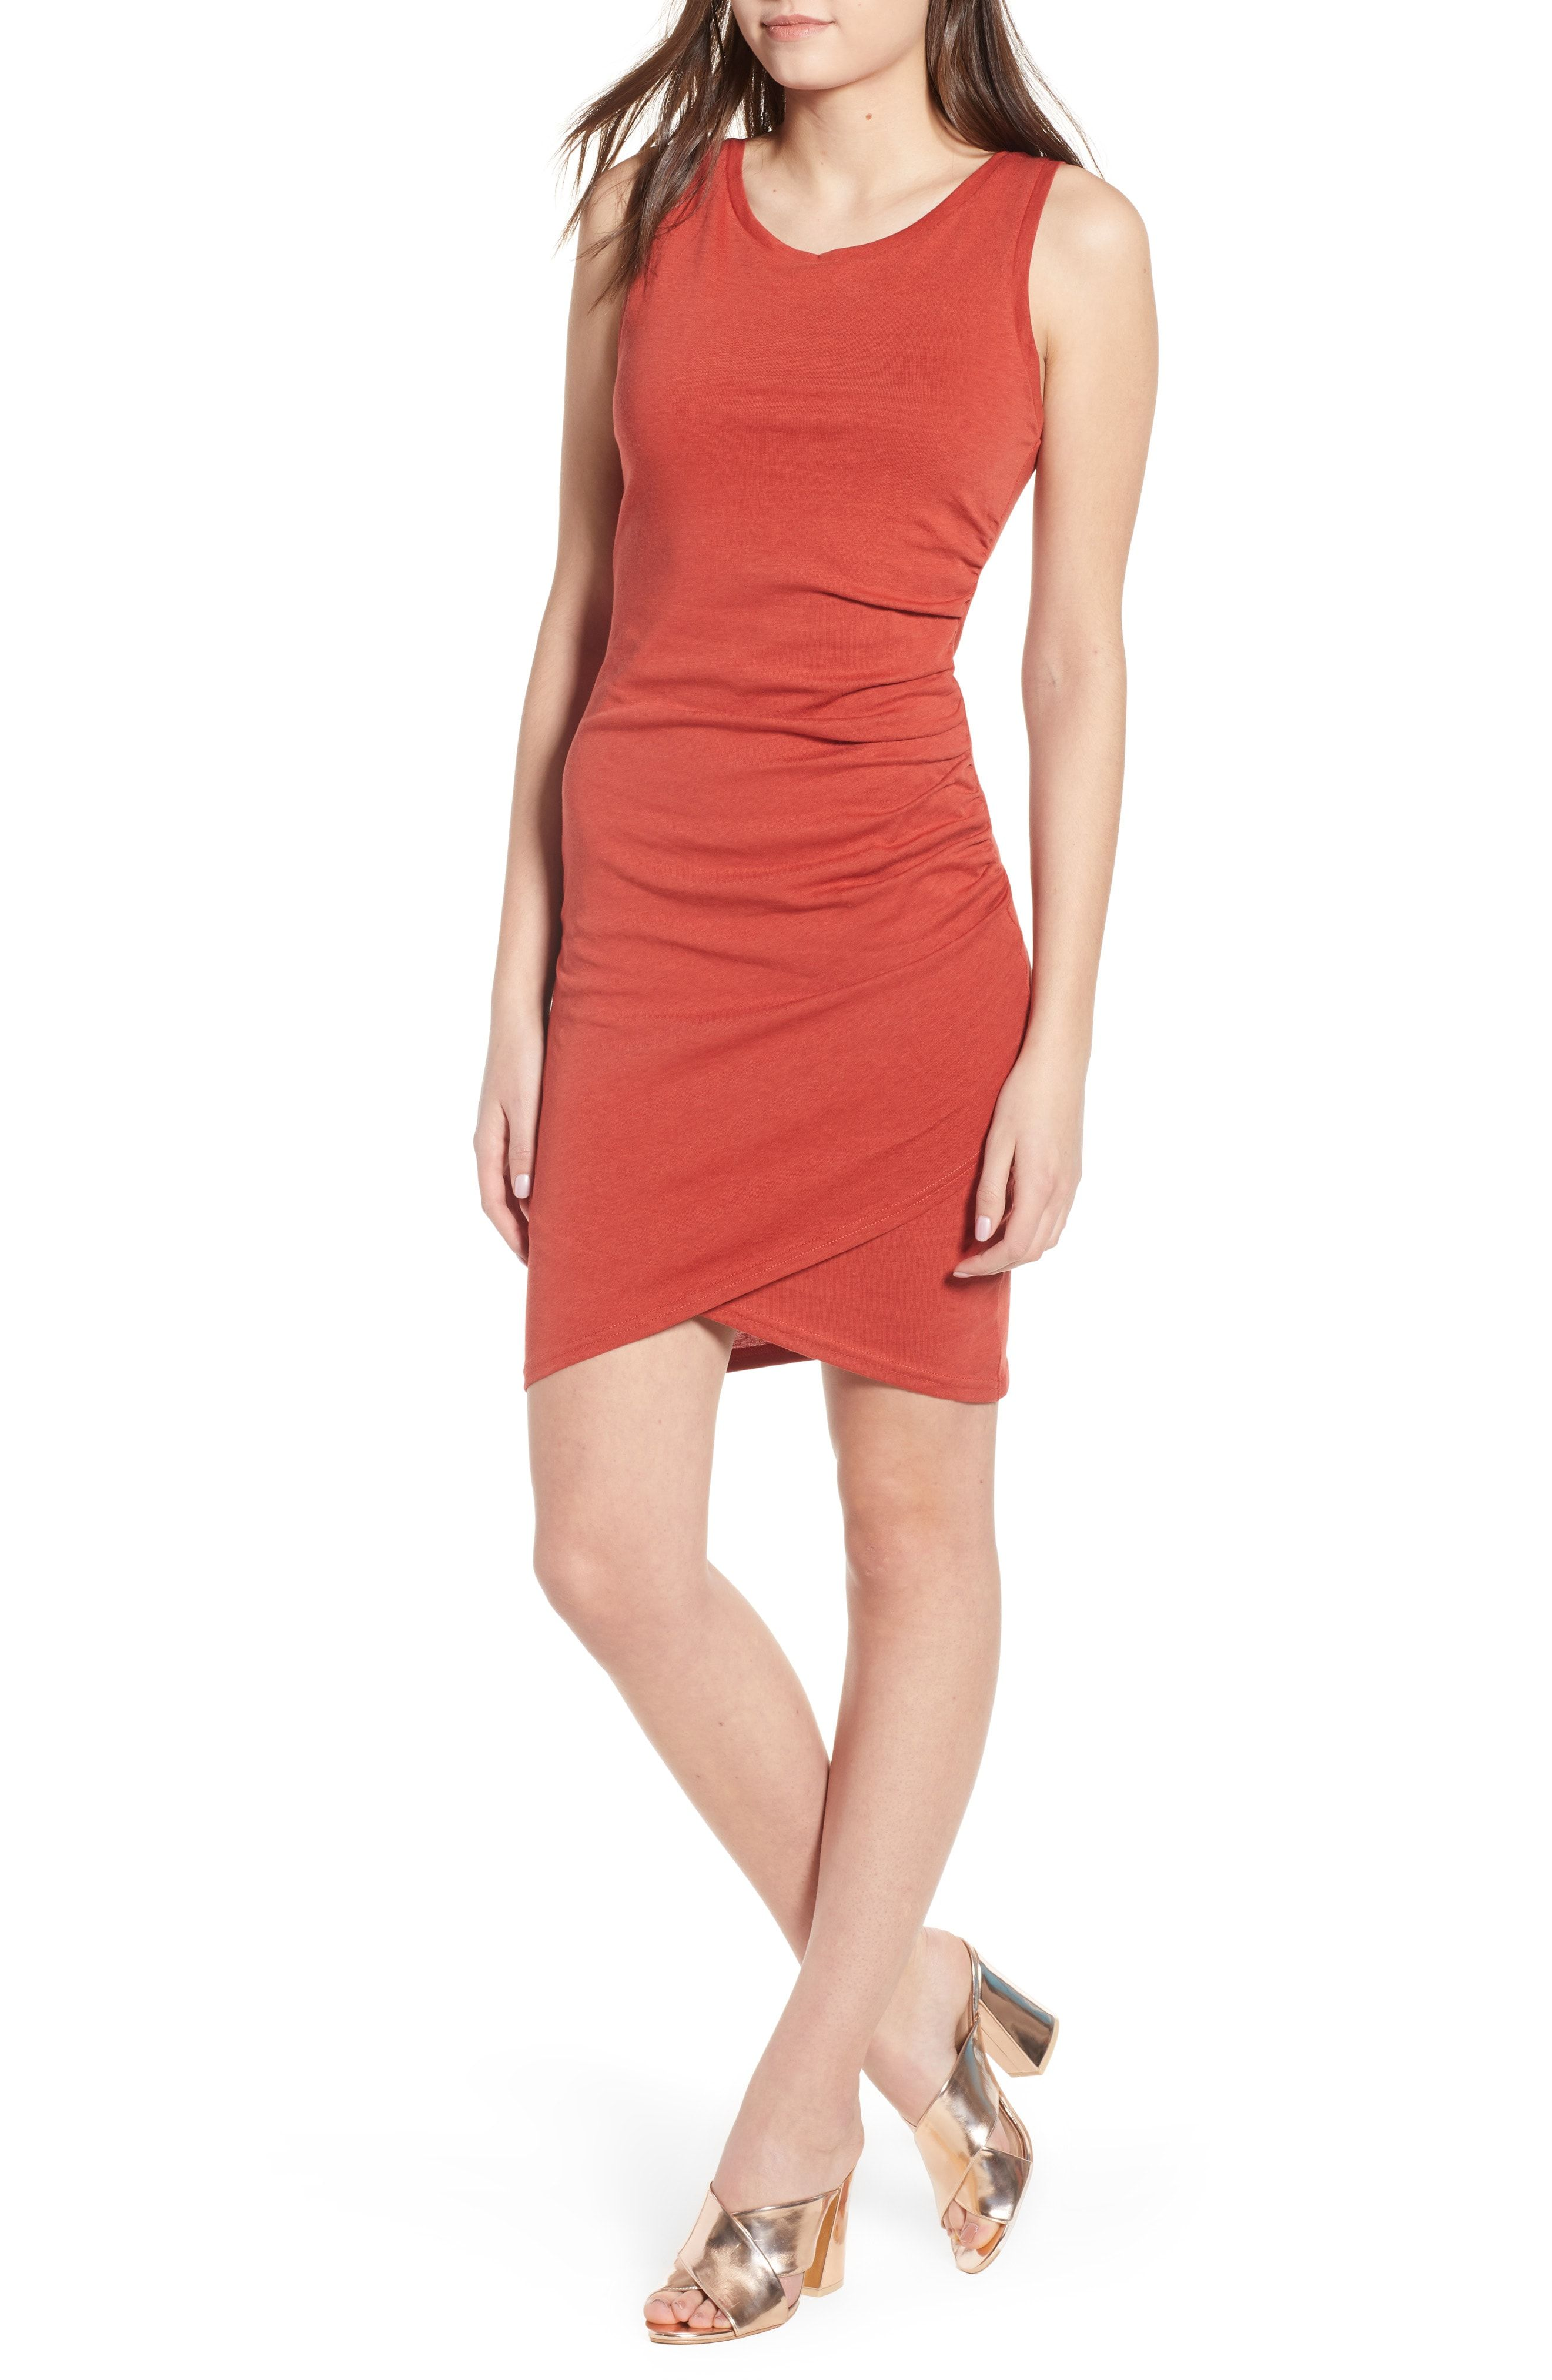 Leith ruched bodycon tank dress womens outfit ideas in